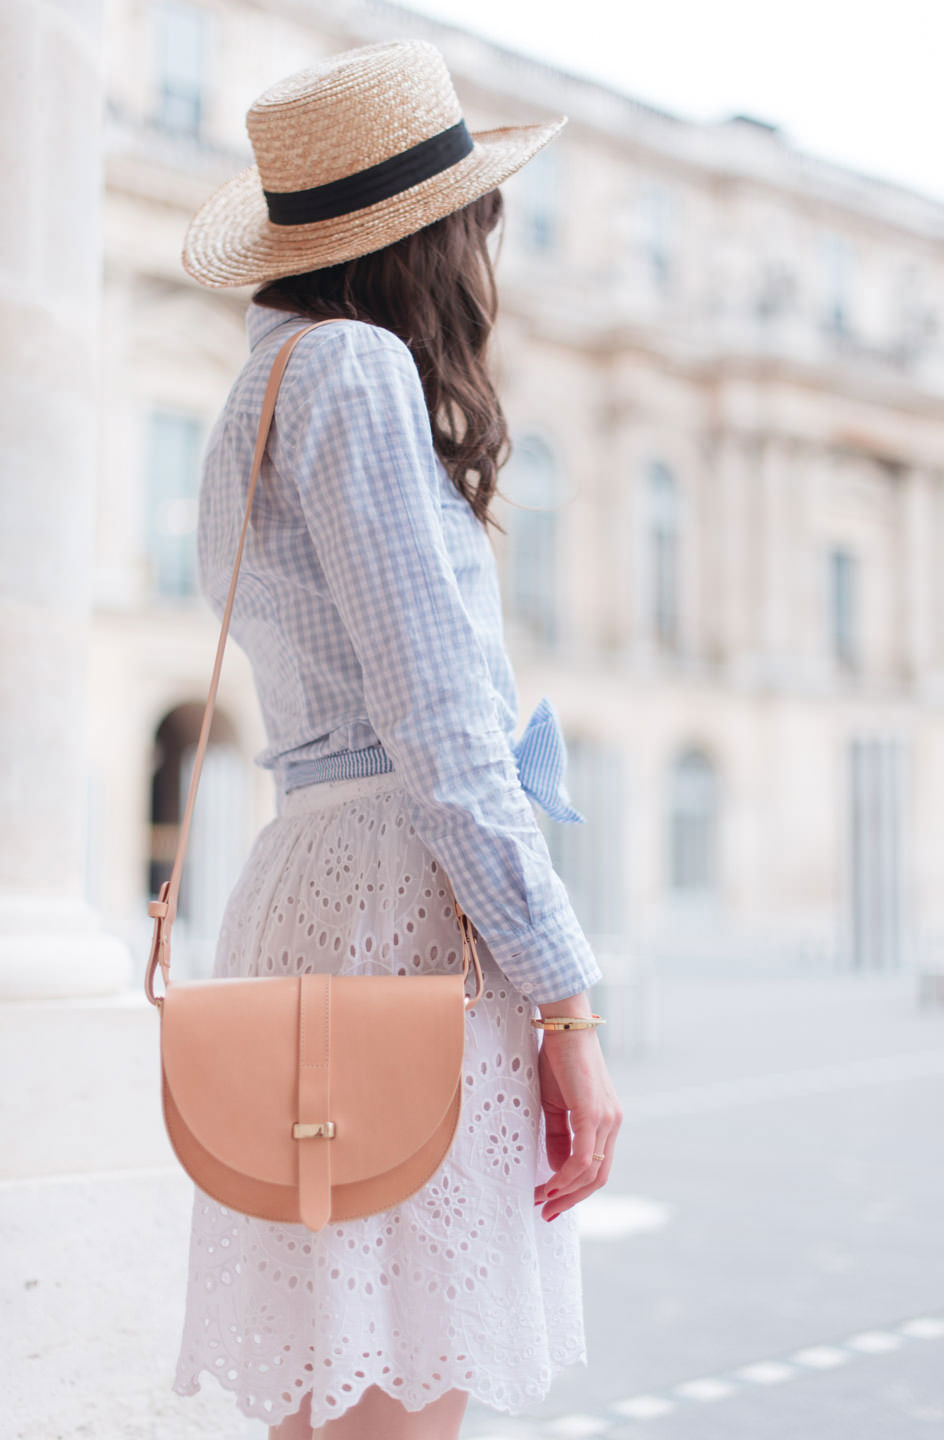 Blog-Mode-And-The-City-Looks-La-Chemise-Vichy-7